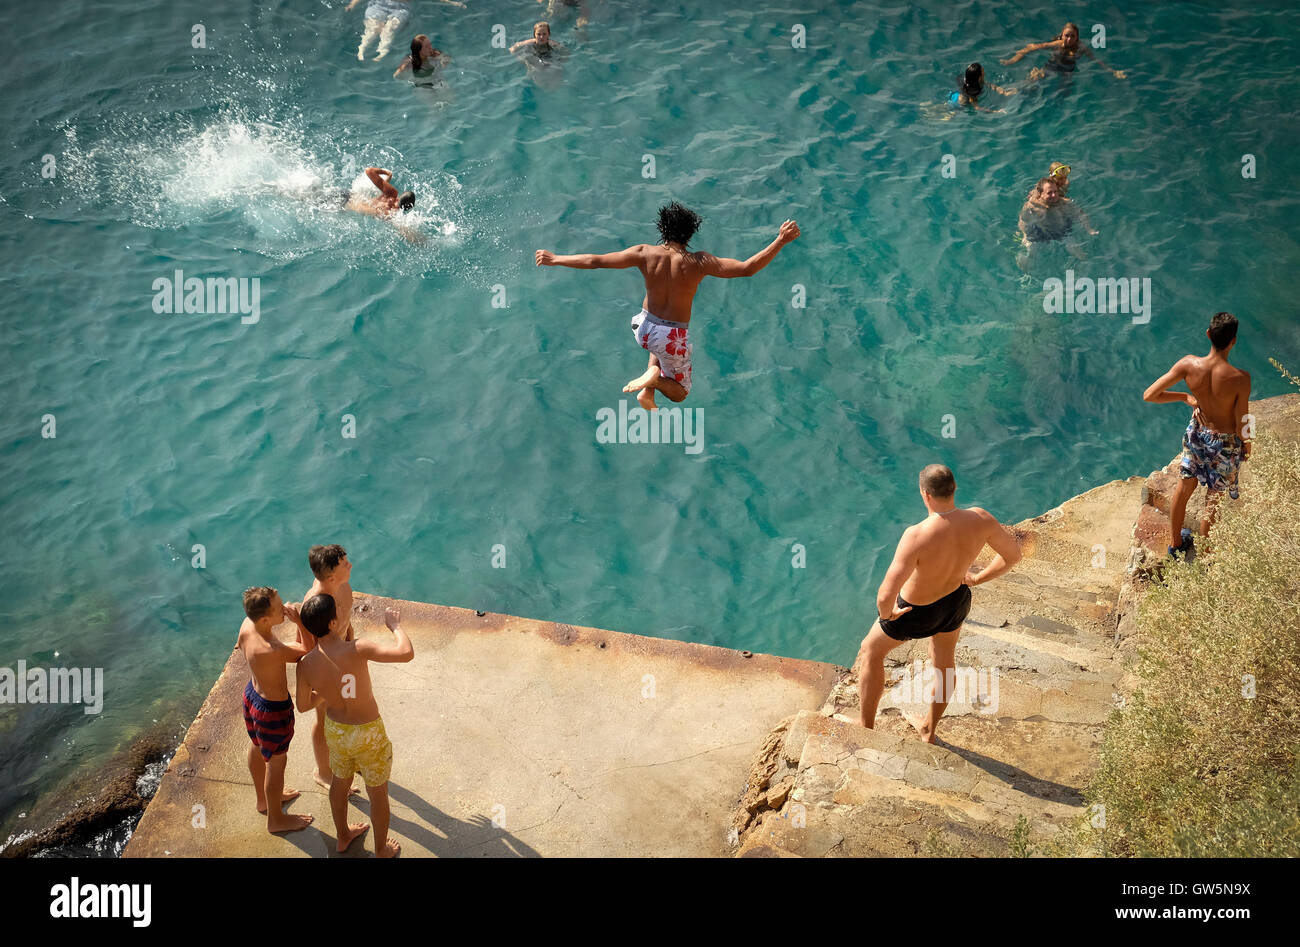 Young boys dive off a platform into the blue waters of the Mediterranean Sea while swimmers watch below - Stock Image